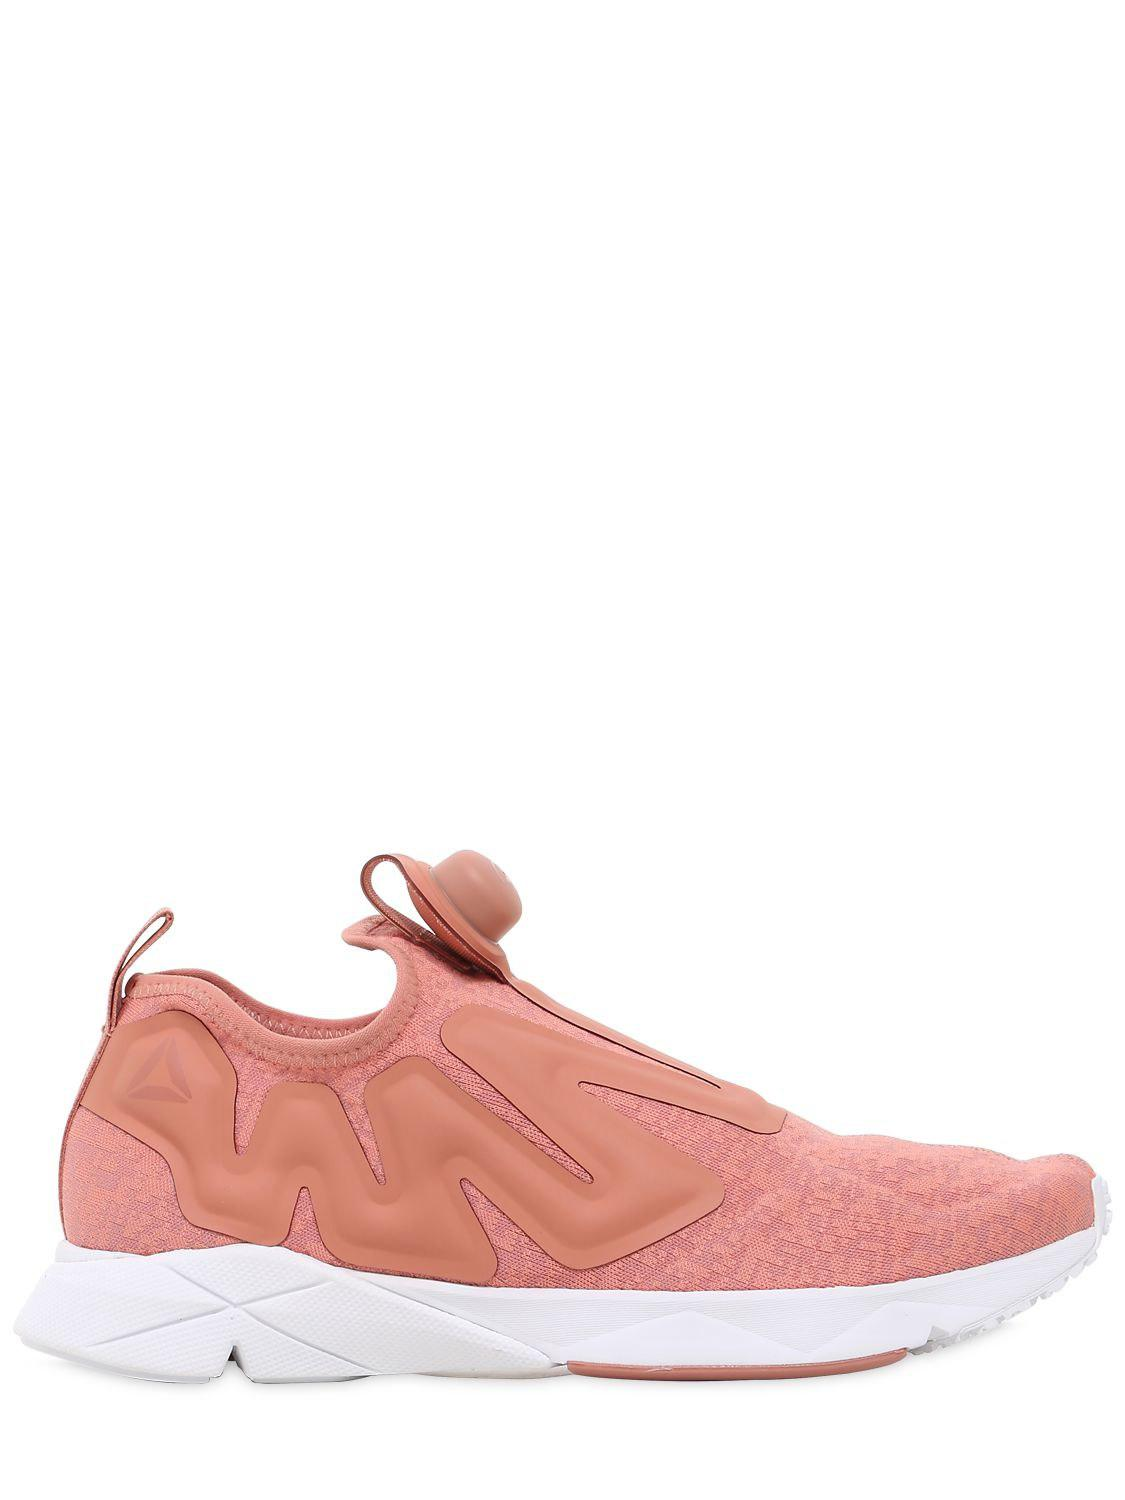 eeb1271a8c1d0 Reebok Pump Supreme Guerrilla Sneakers in Pink for Men - Save 65% - Lyst